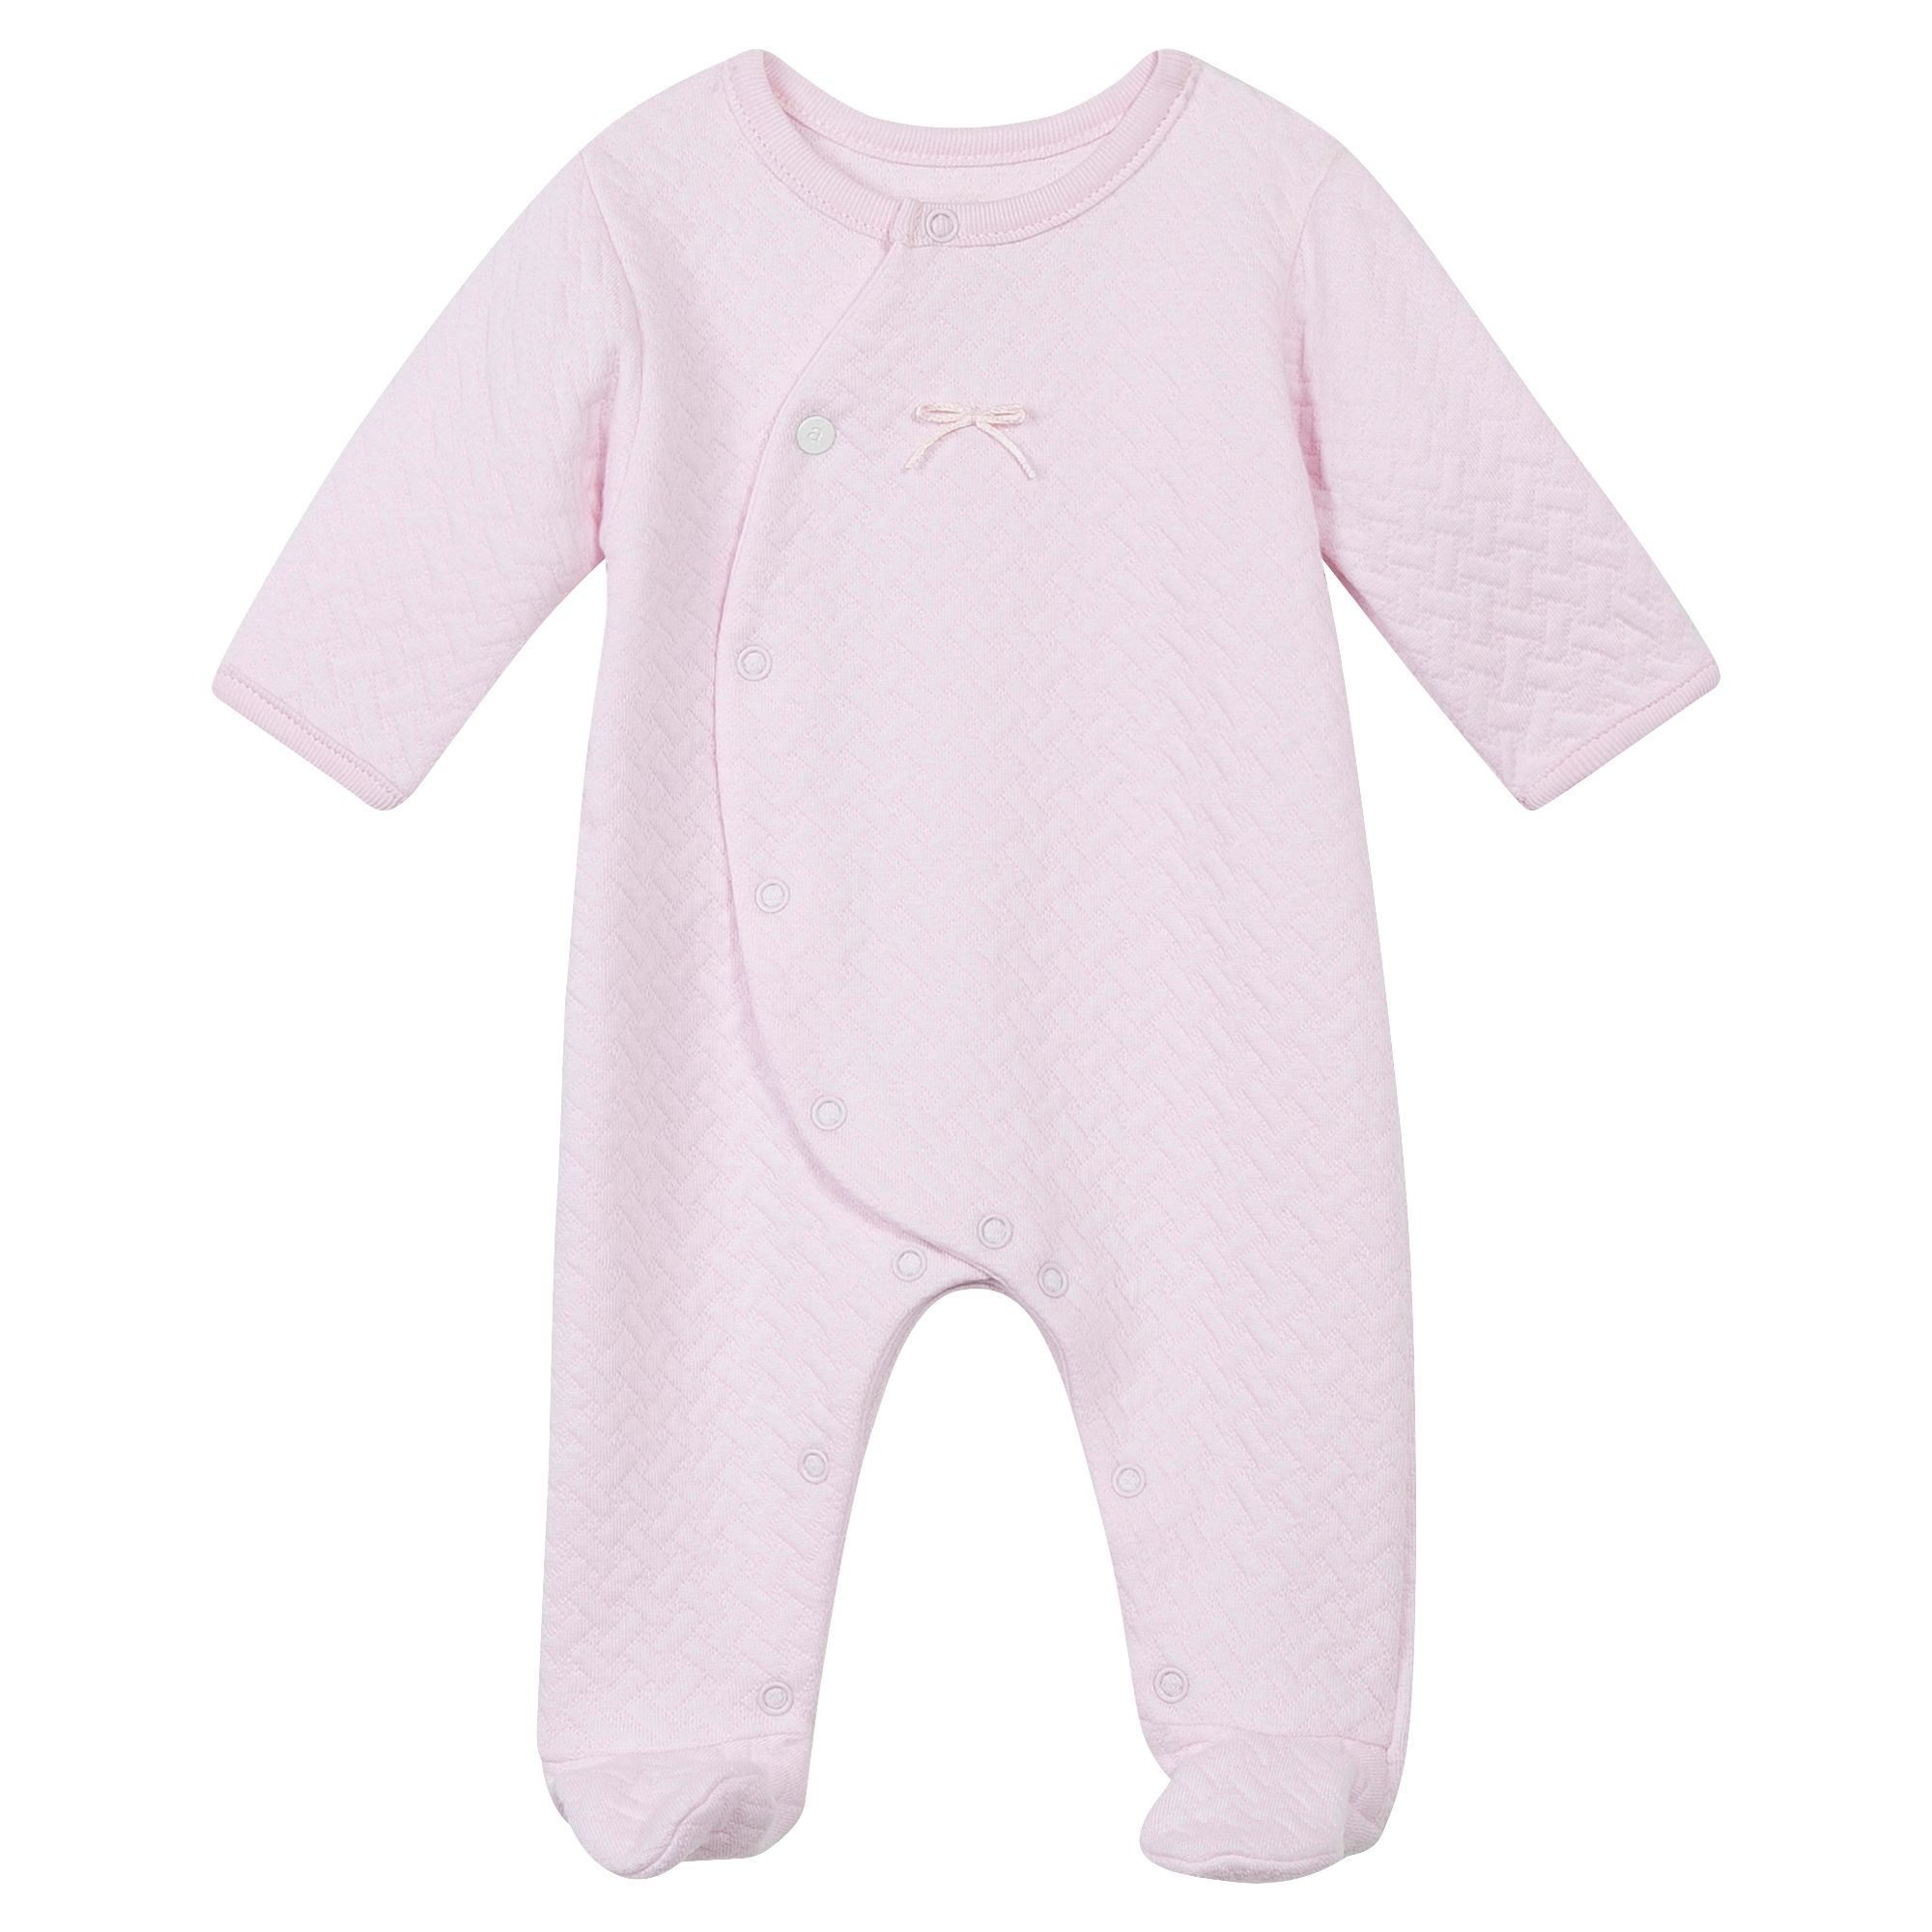 Absorba Absorba Baby Quilted Sleepsuit, Pink